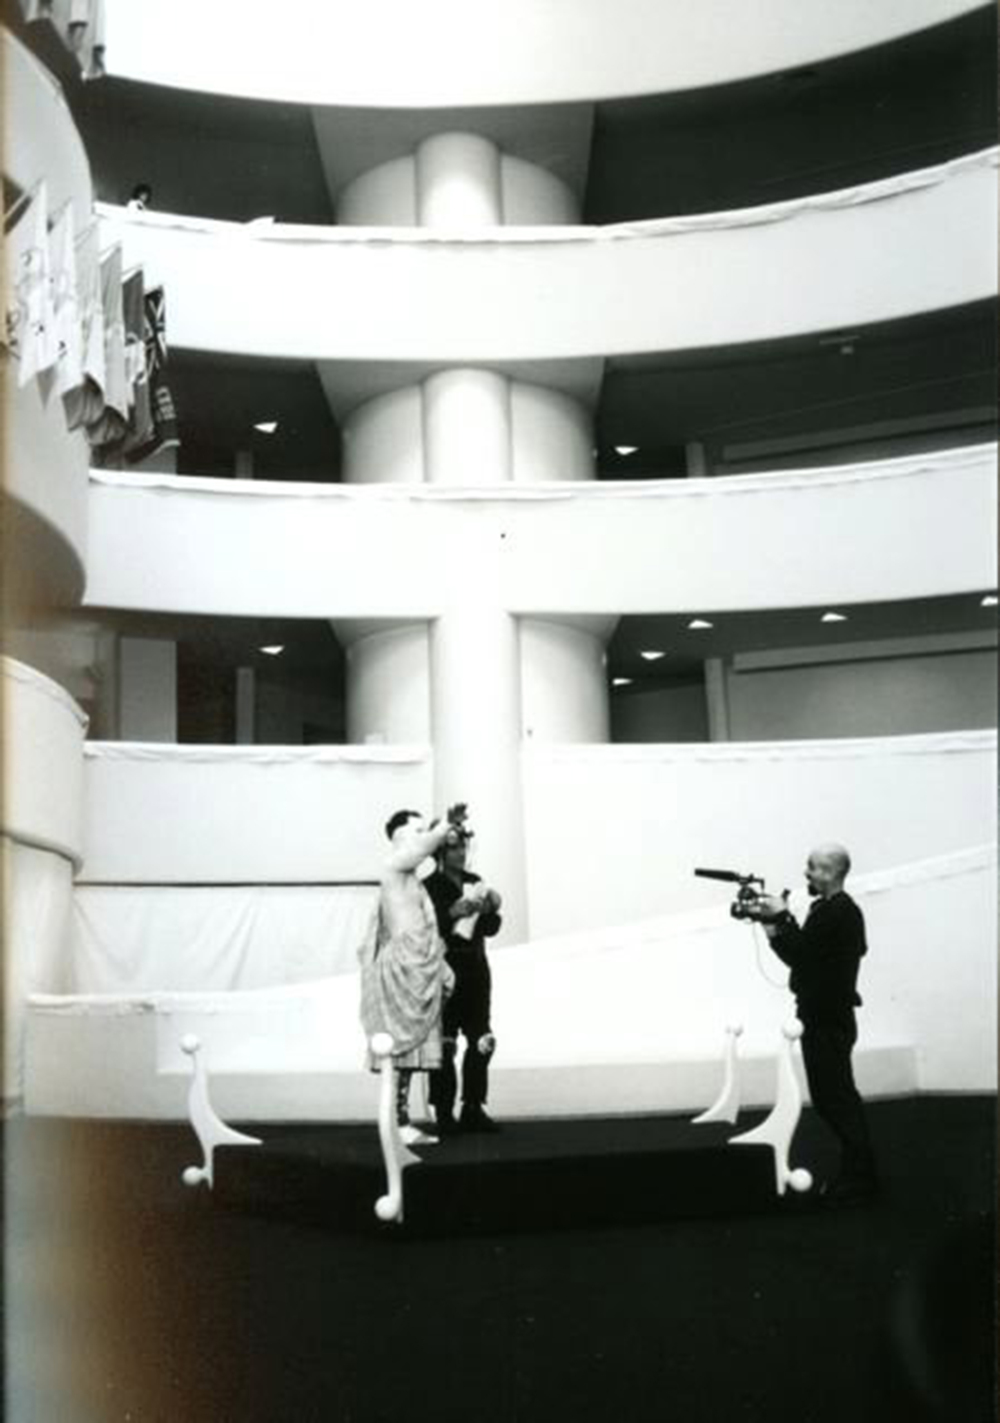 Me shooting video footage of Matthew Barney and Richard Serra in the Guggenheim Museum in NYC during the live action shoot for Cremaster 3.